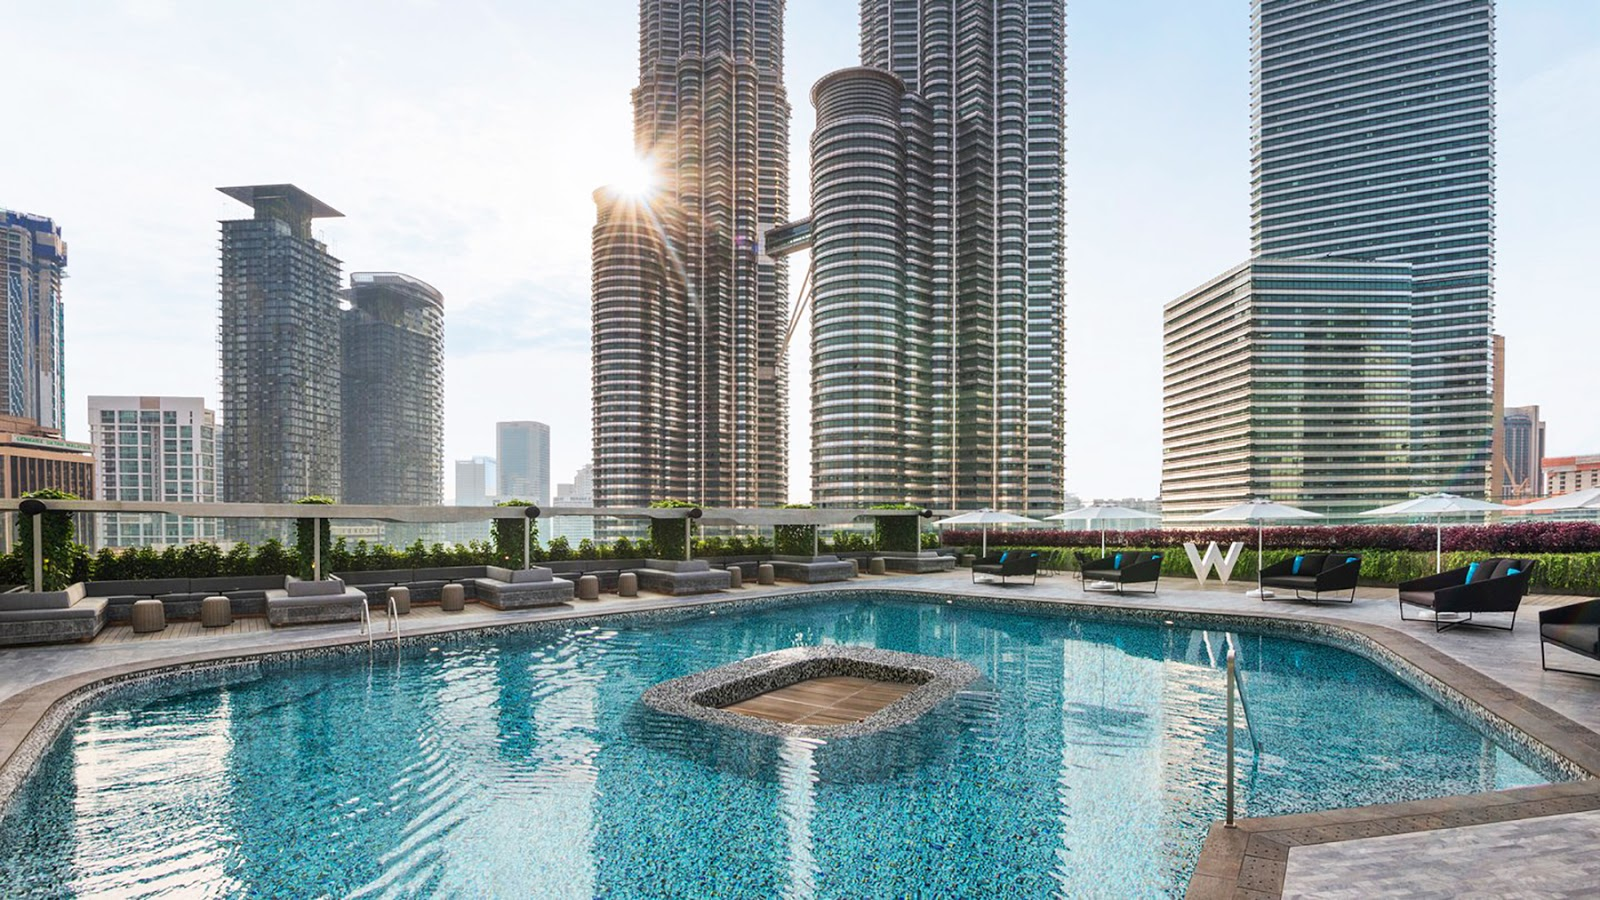 My review of the 5 star luxury hotel The W Kuala Lumpur, The Away Spa, and more by Posh, Broke, & Bored